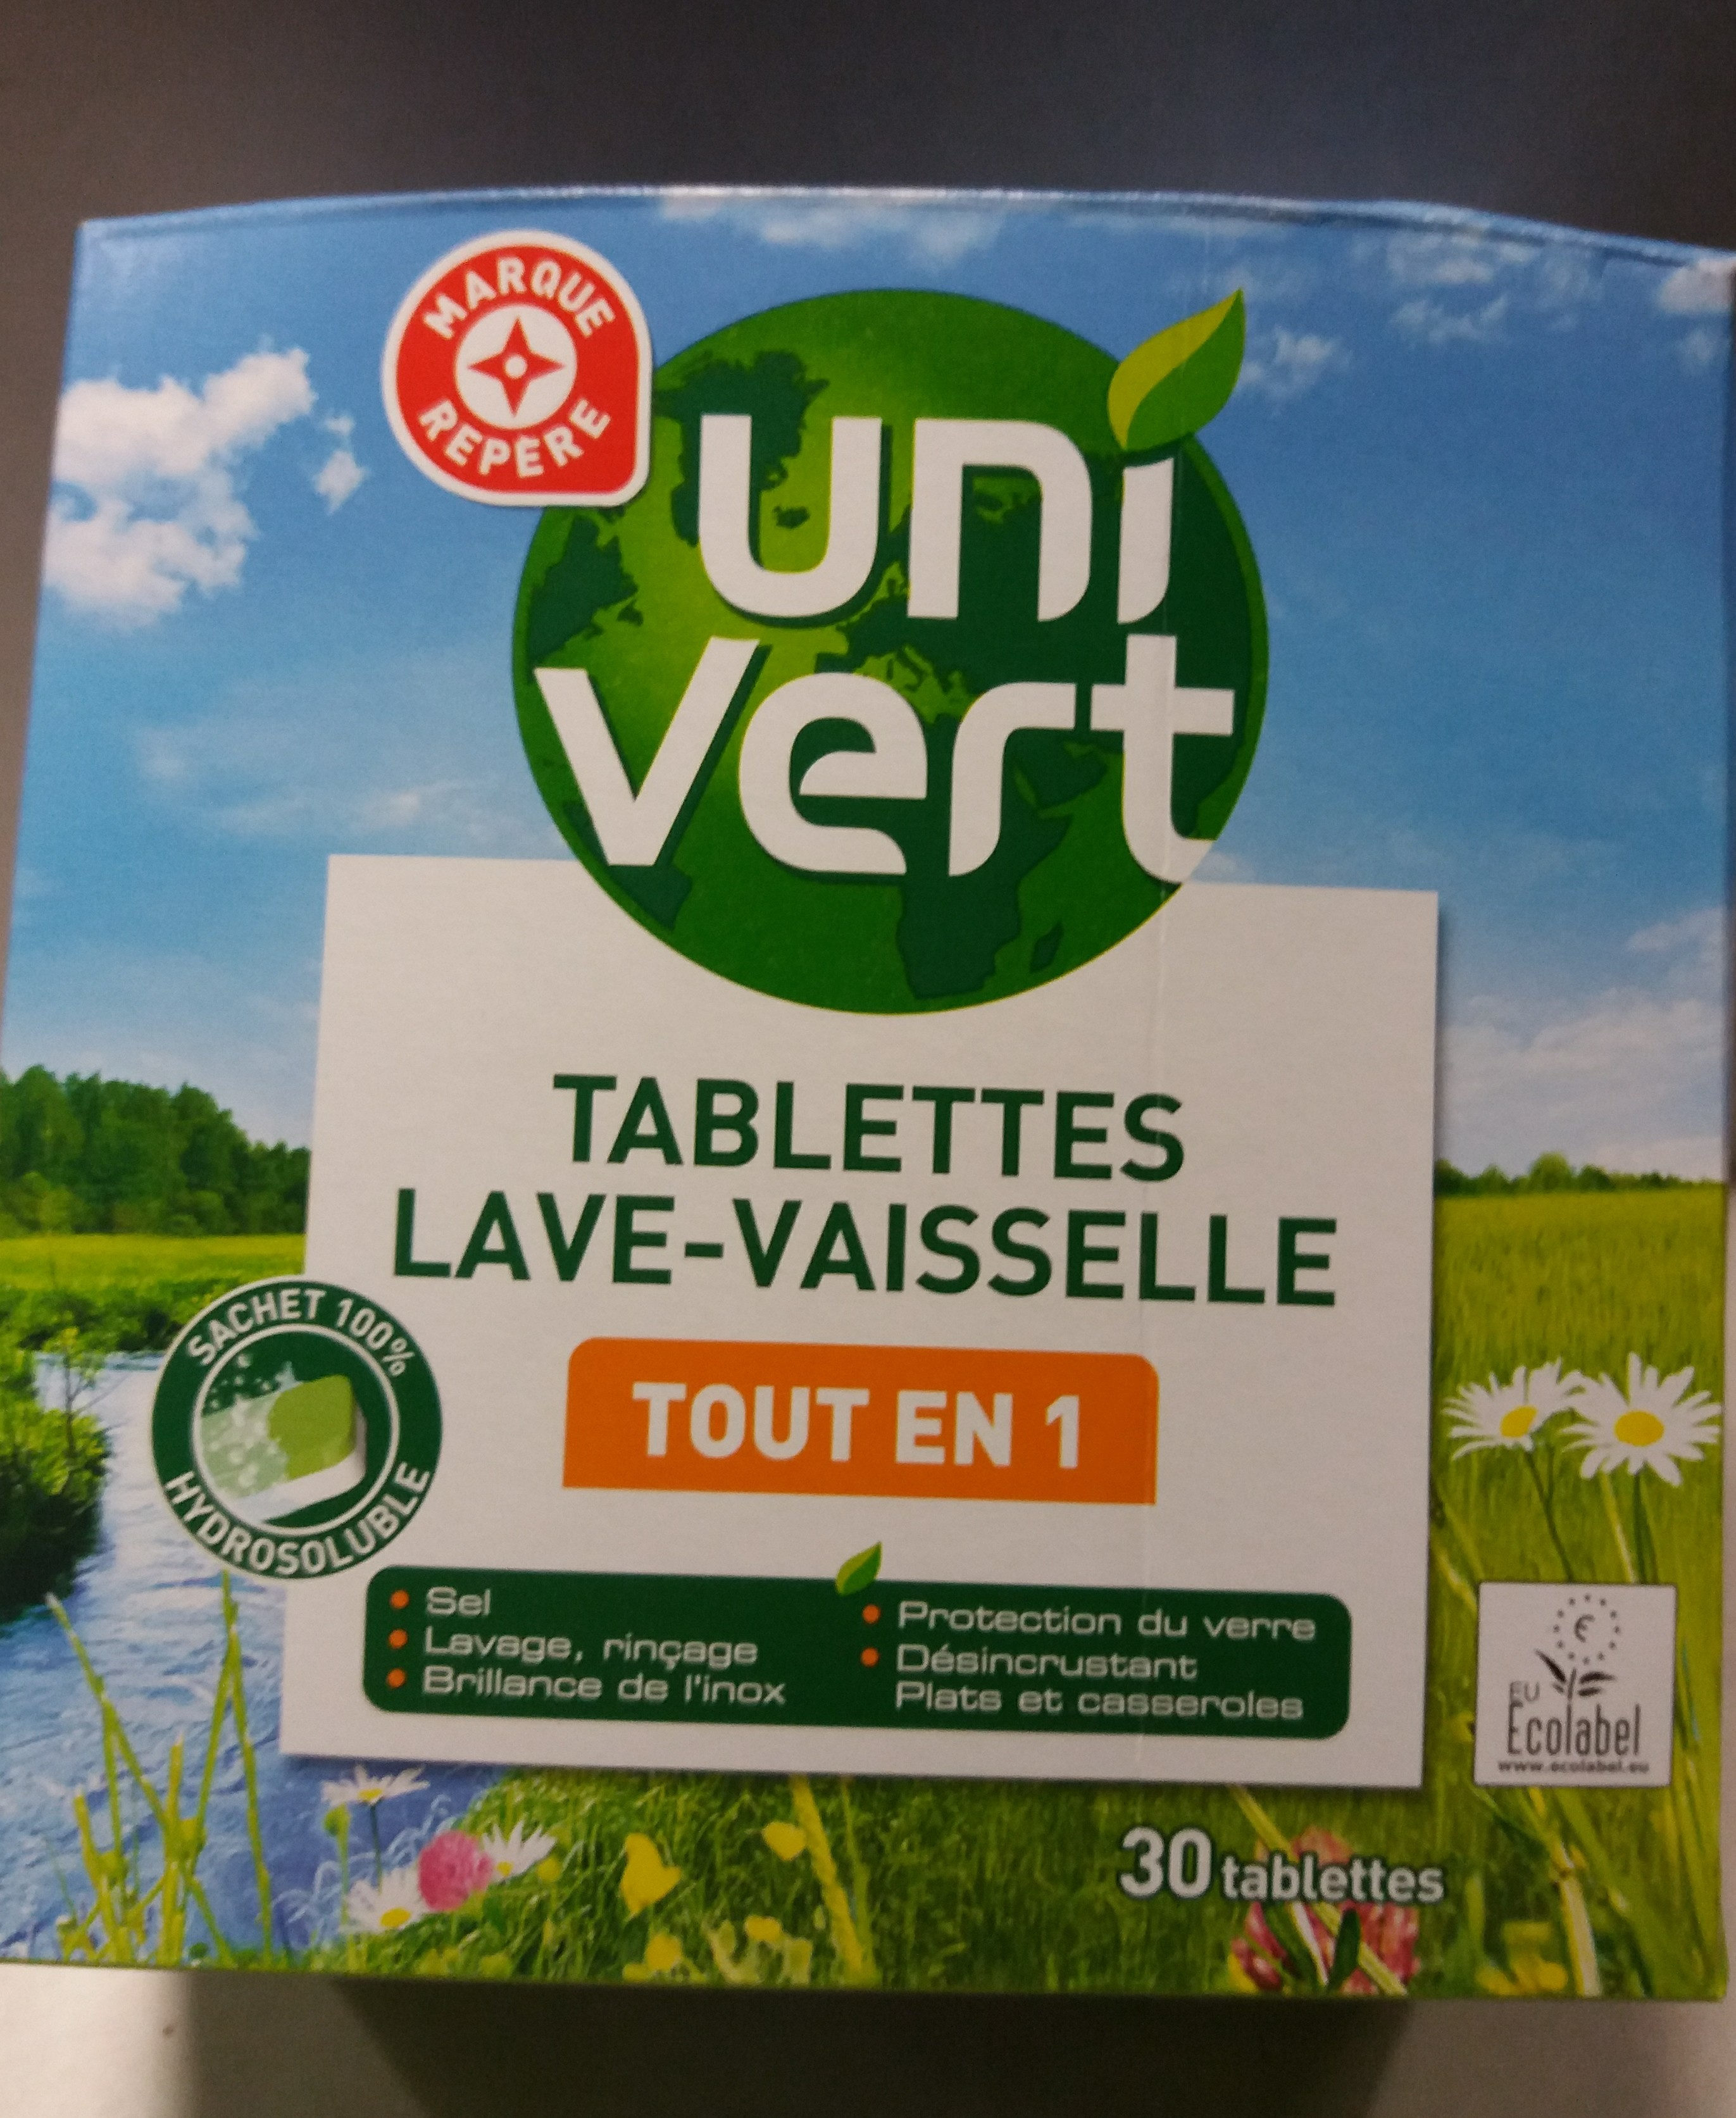 tablette lave vaisselle - Product